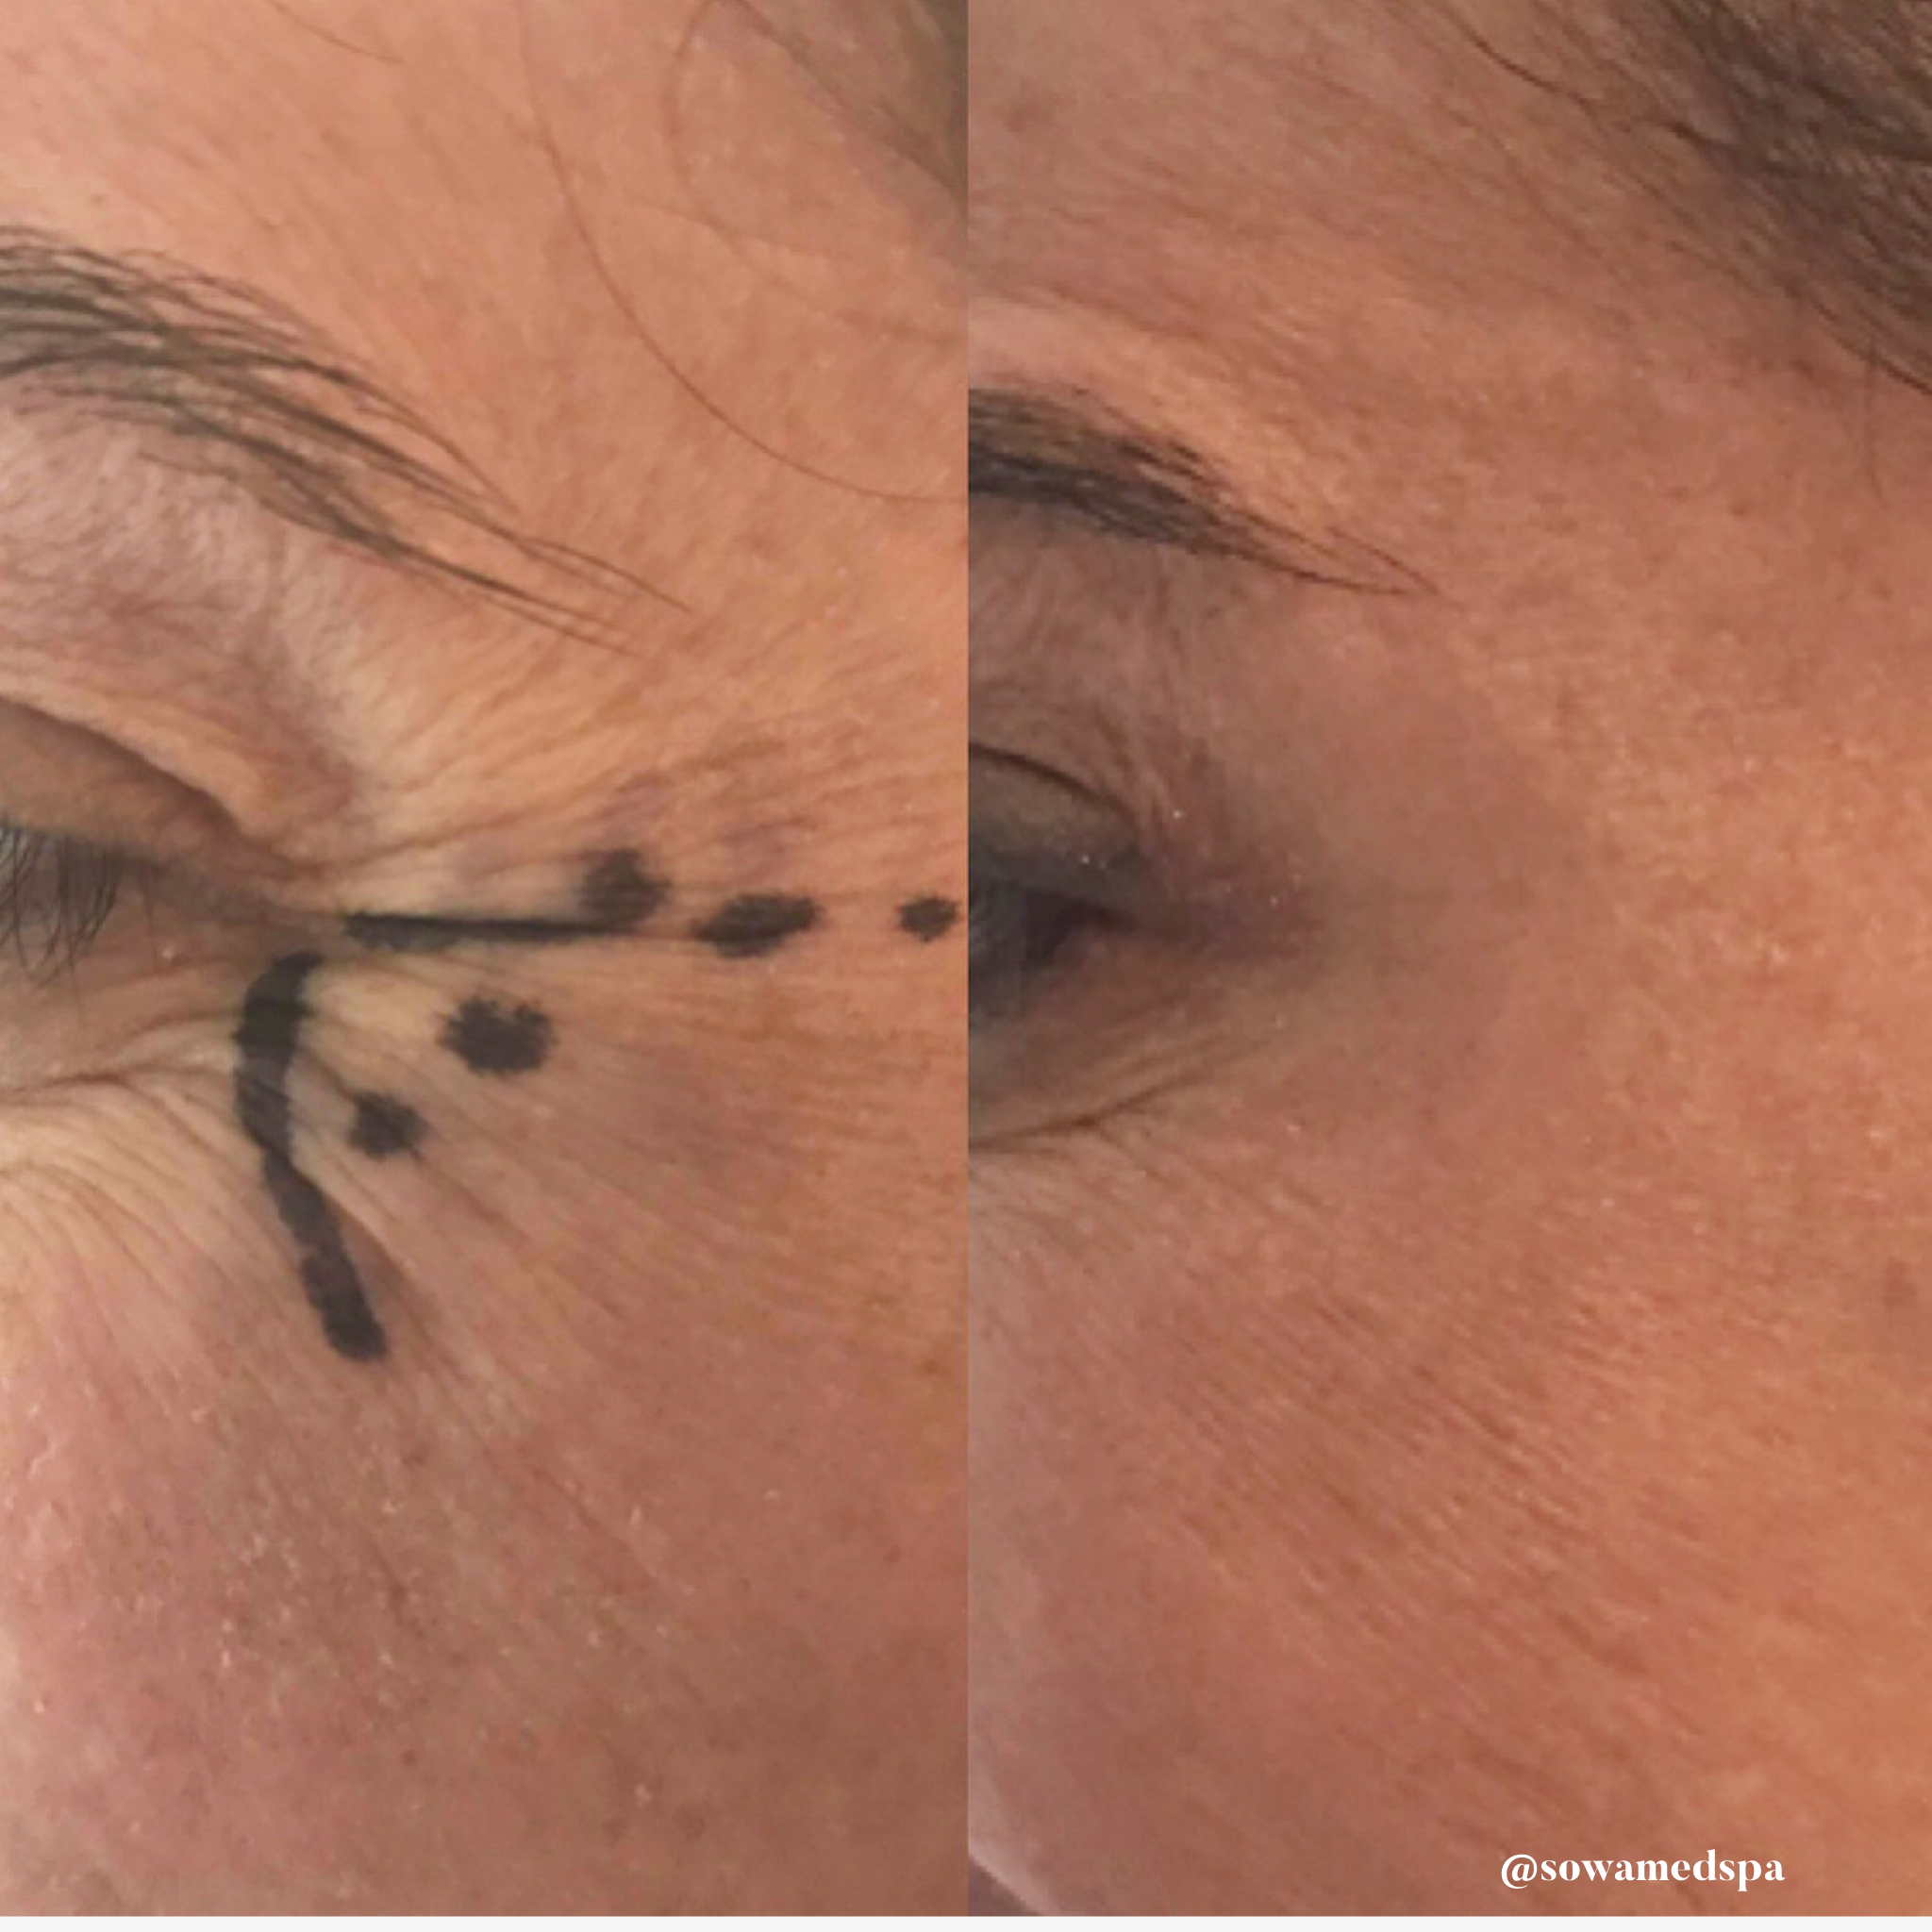 15 units of botox total to the obicularis occuli